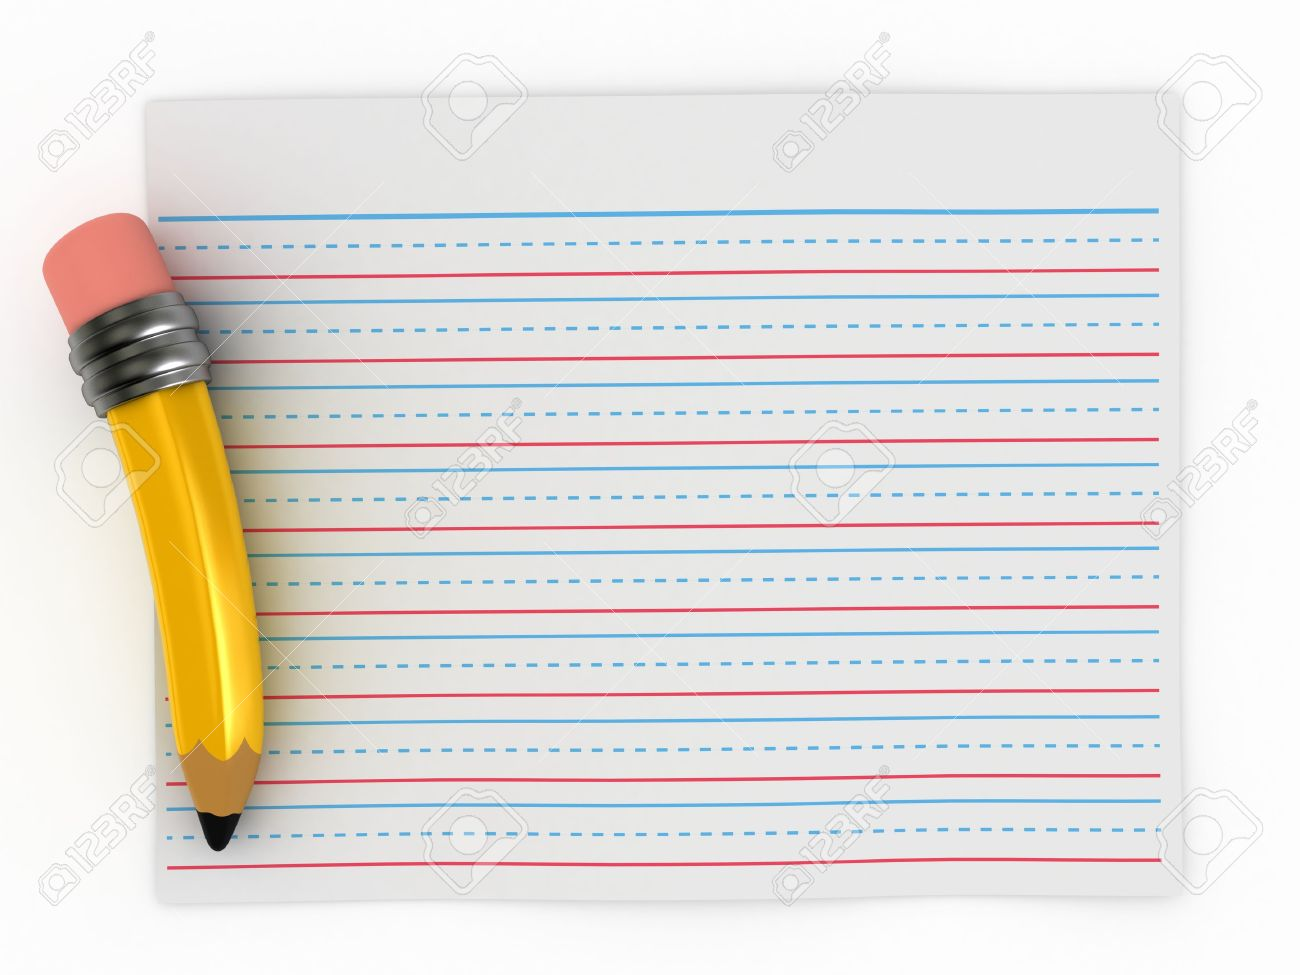 Writing pad clipart #6